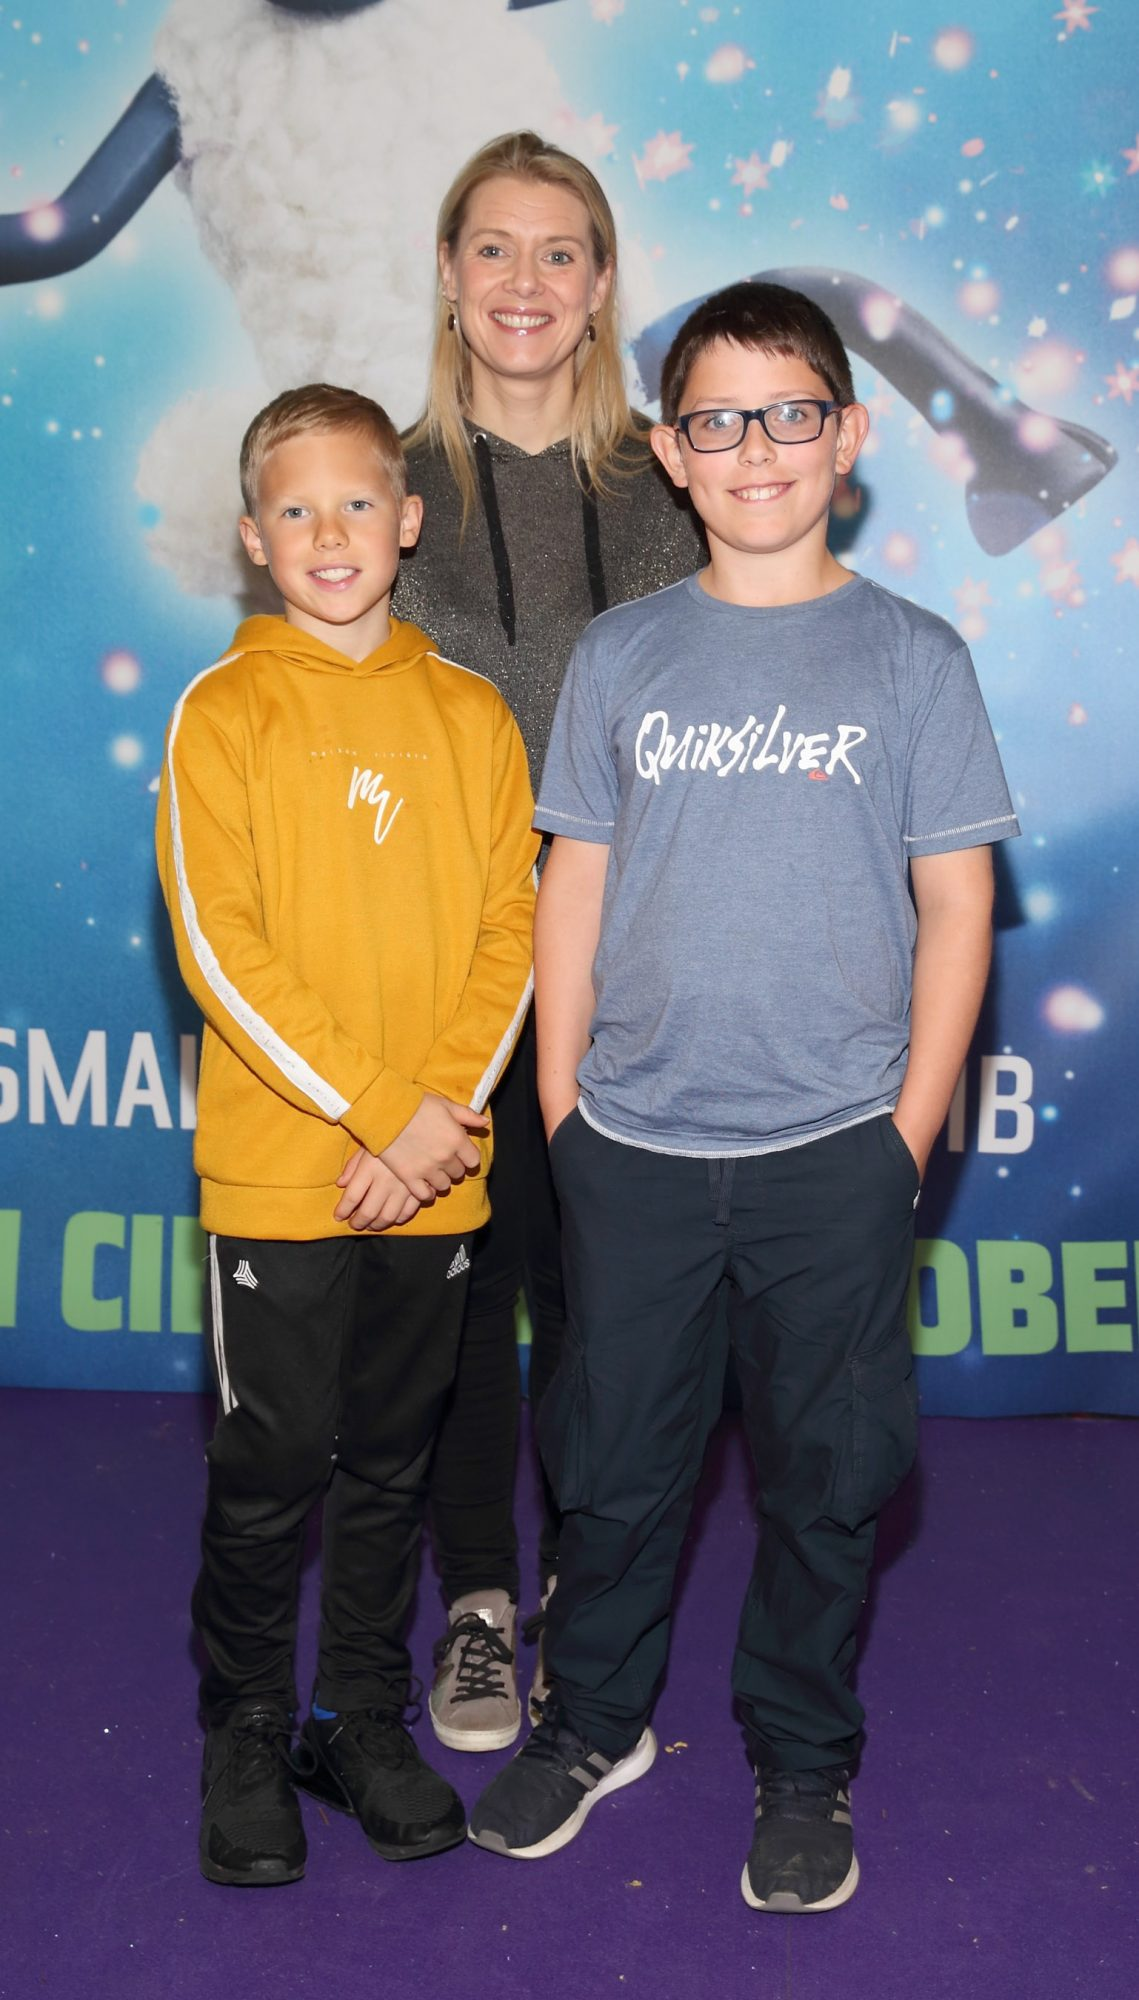 Brodie Ryan, Edel Ryan and Dylan Clelland  at the special preview screening of Shaun the Sheep at the Odeon Cinema In Point Square, Dublin.  Pic: Brian McEvoy Photography